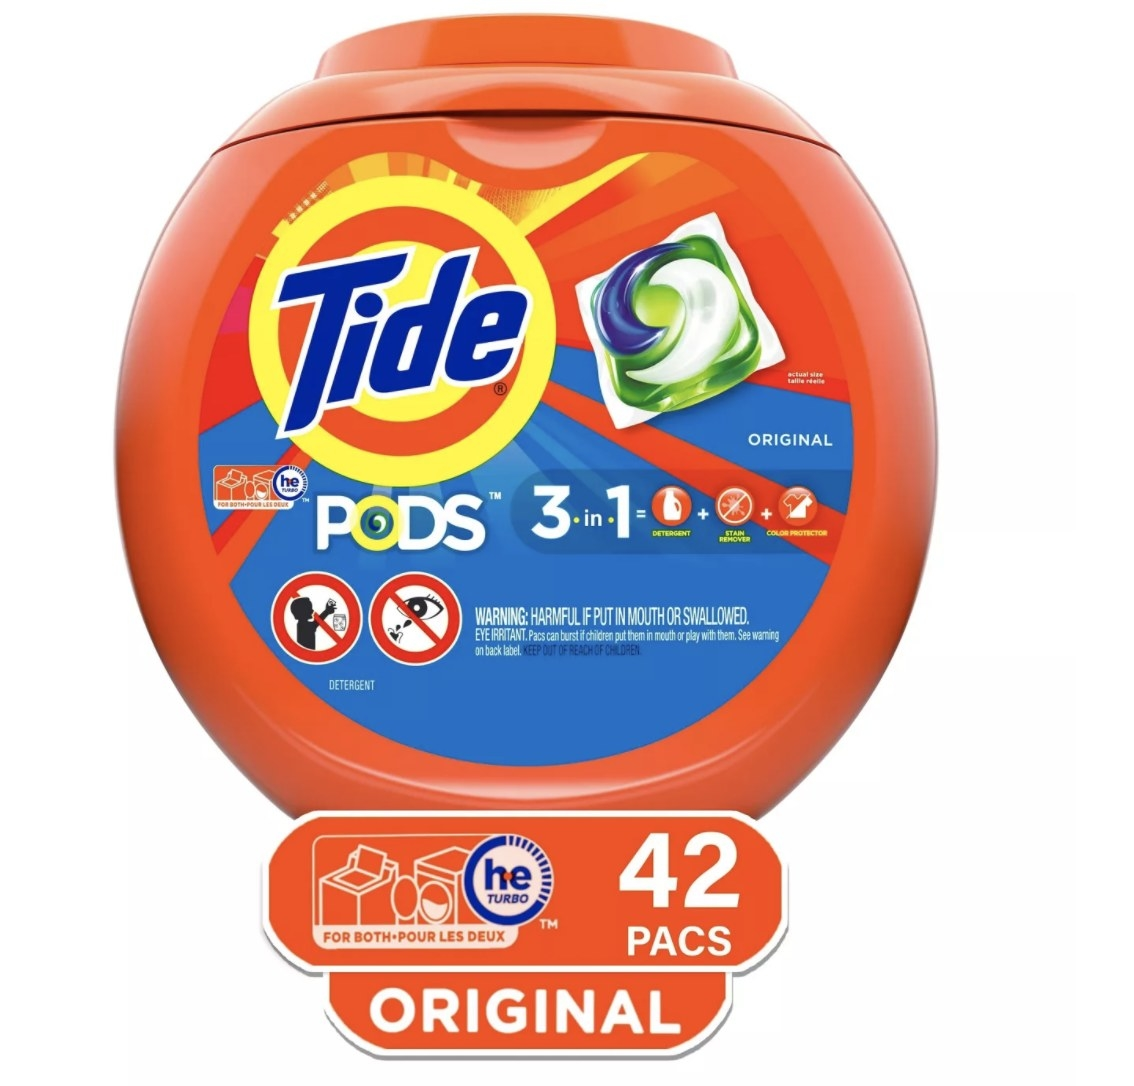 The box of Tide pods